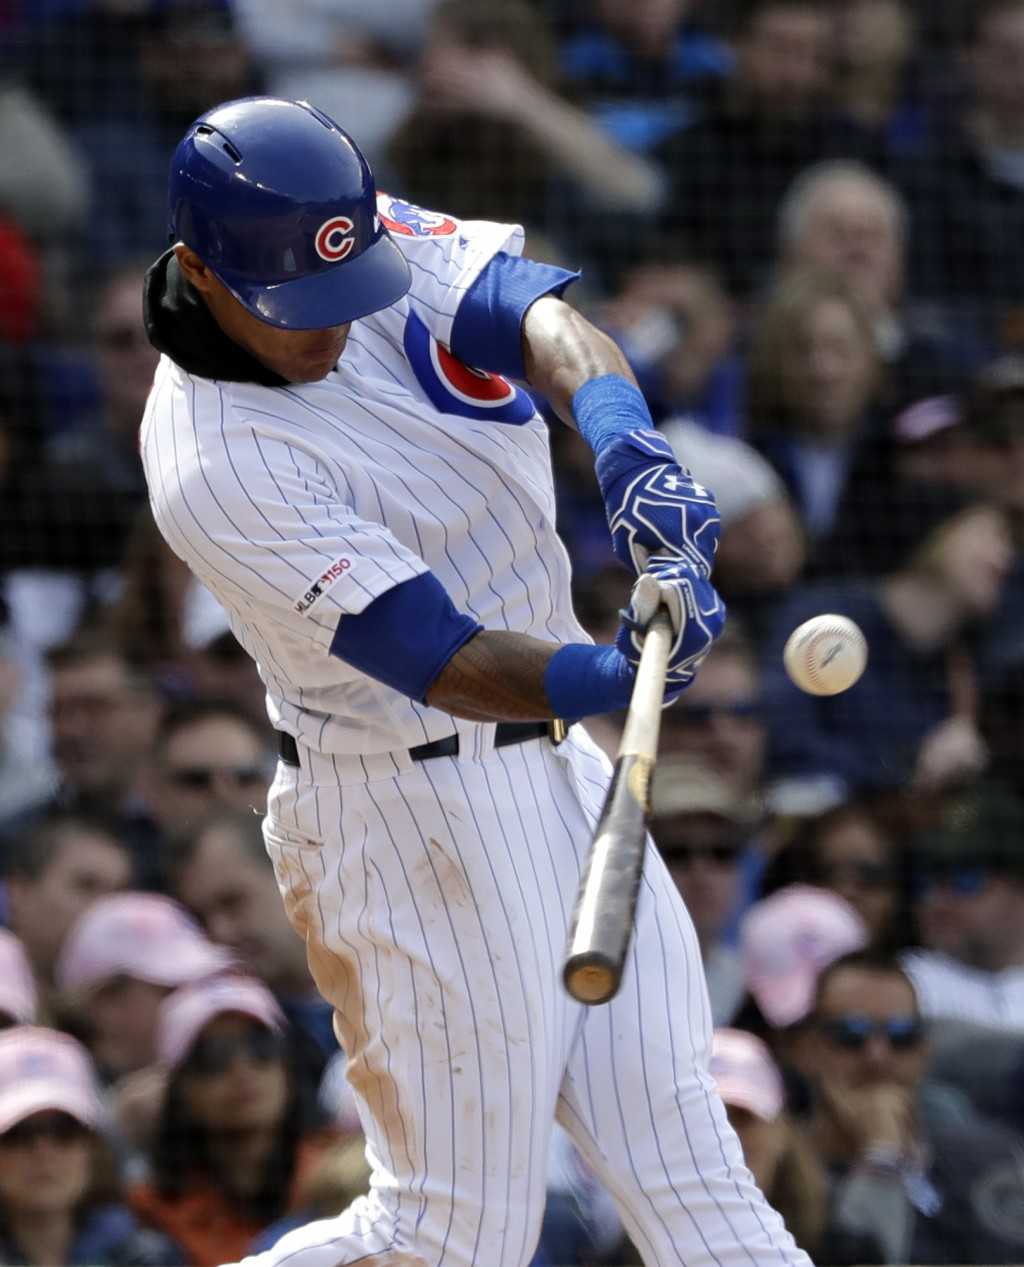 Chicago Cubs' Addison Russell hits a double during the seventh inning of a baseball game against the Milwaukee Brewers, Friday, May 10, 2019, in Chica...